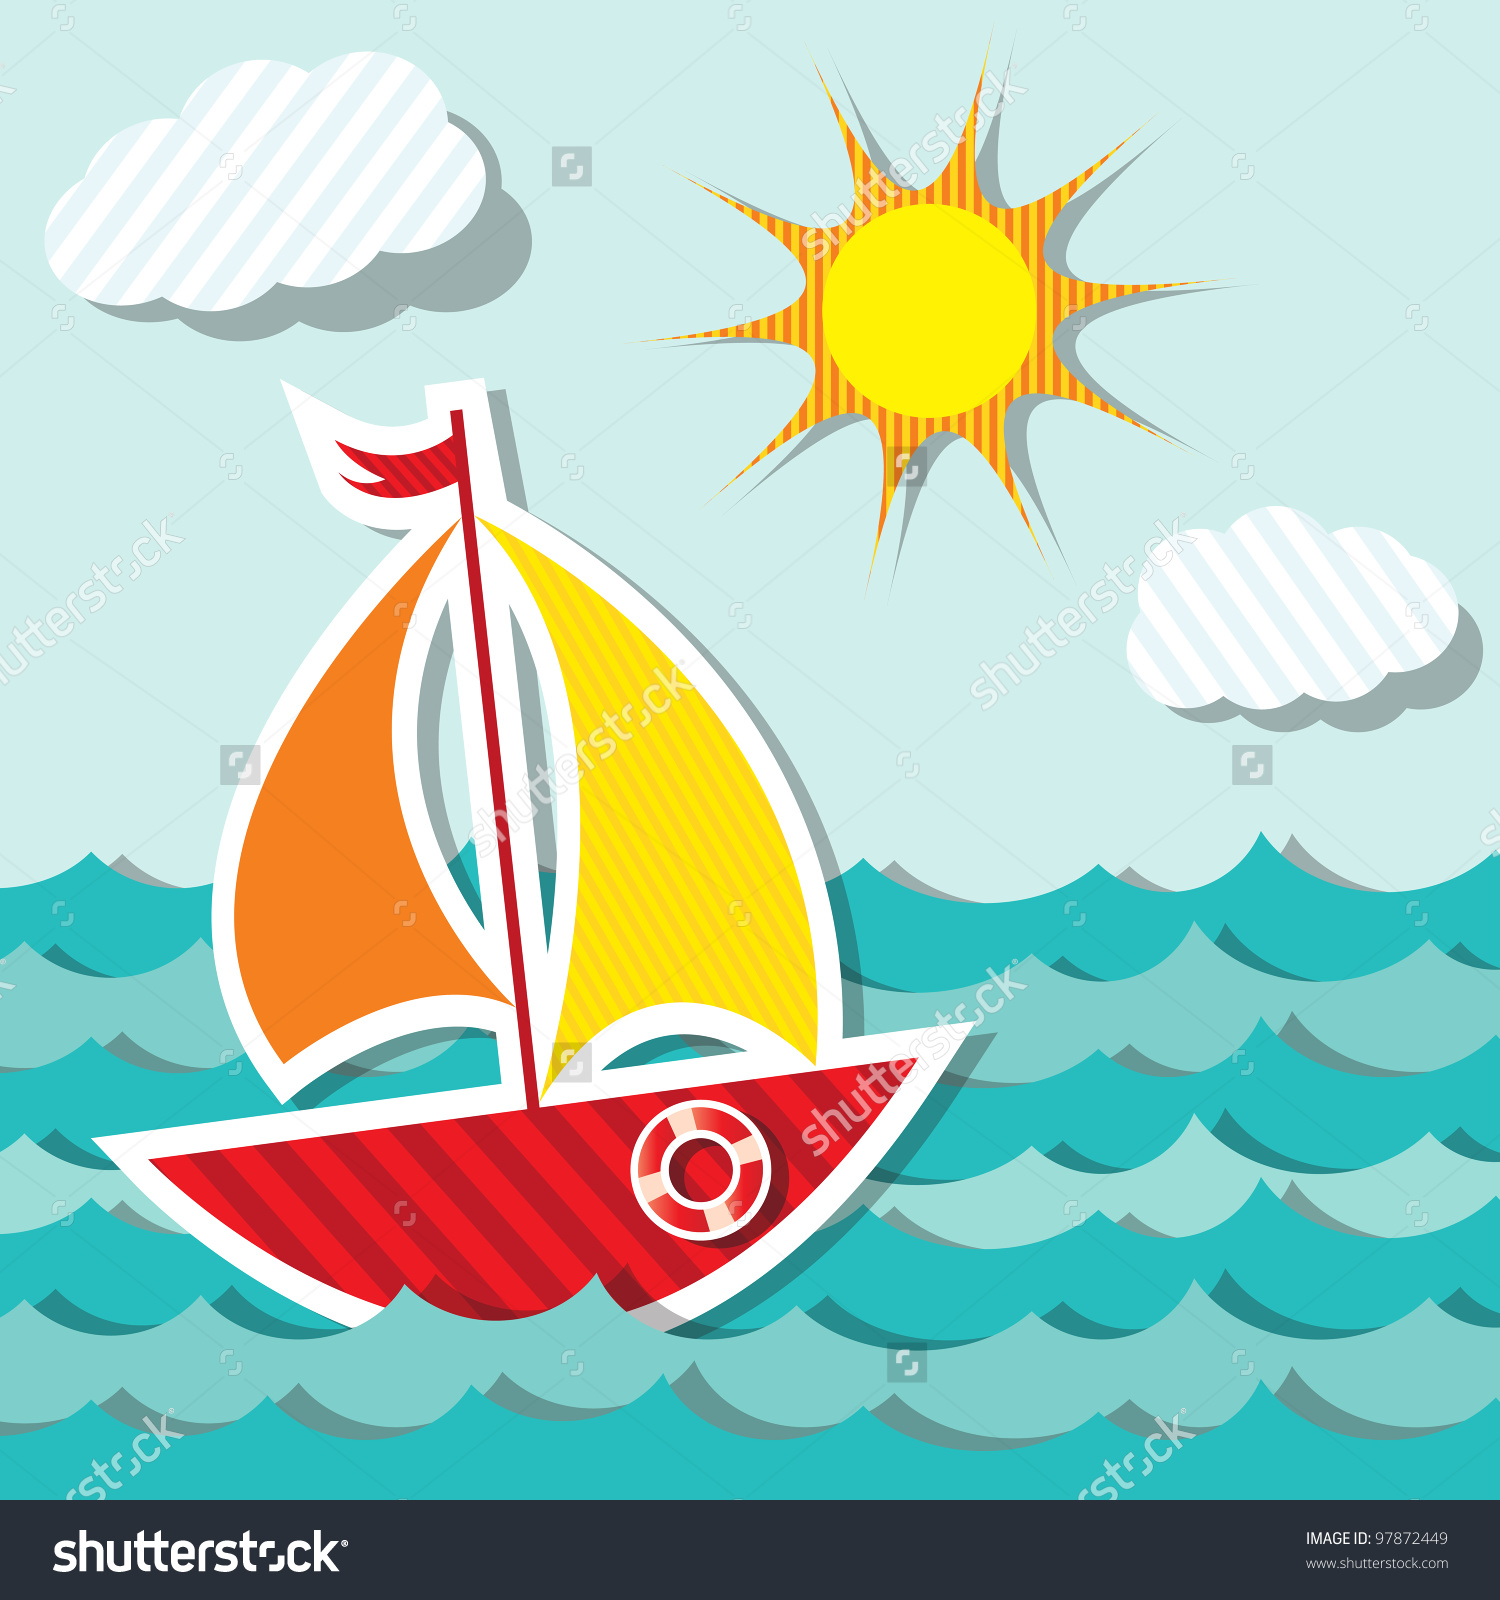 Vector Sailing Boat Sticker Floating On Stock Vector 97872449.